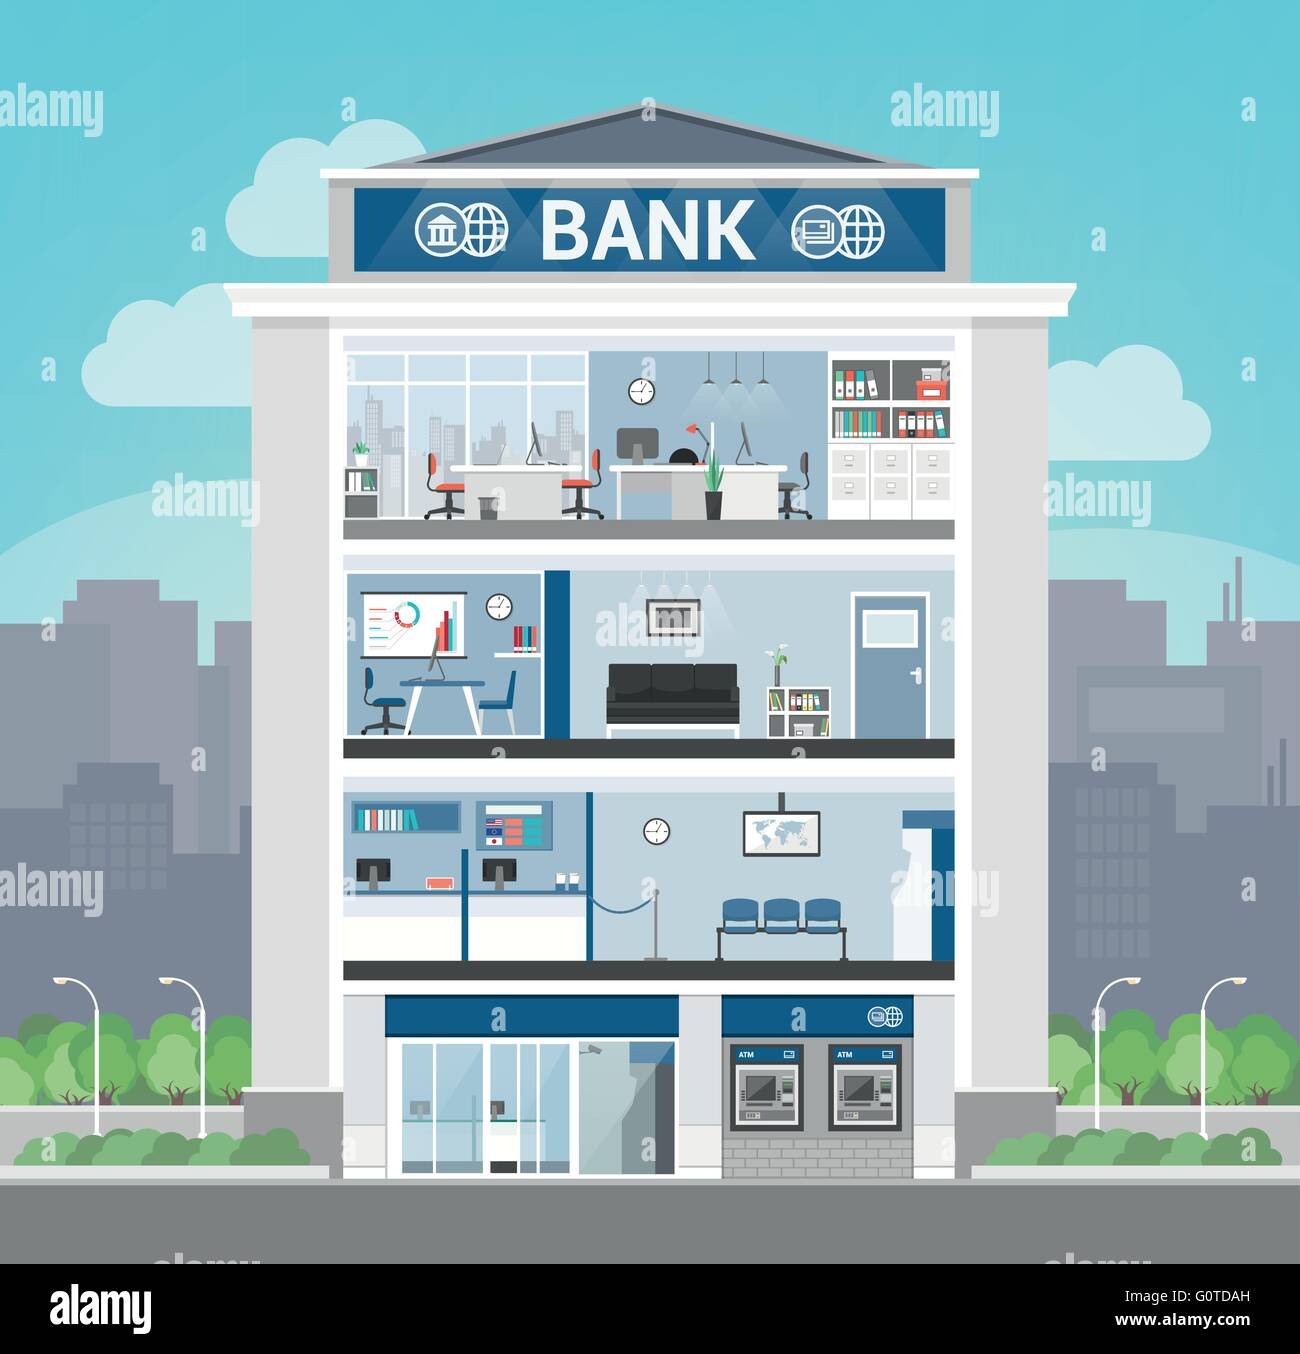 Bank Building Interior With Office Front Desk Waiting Room Entrance And Self Service Atm Banking Finance Concept